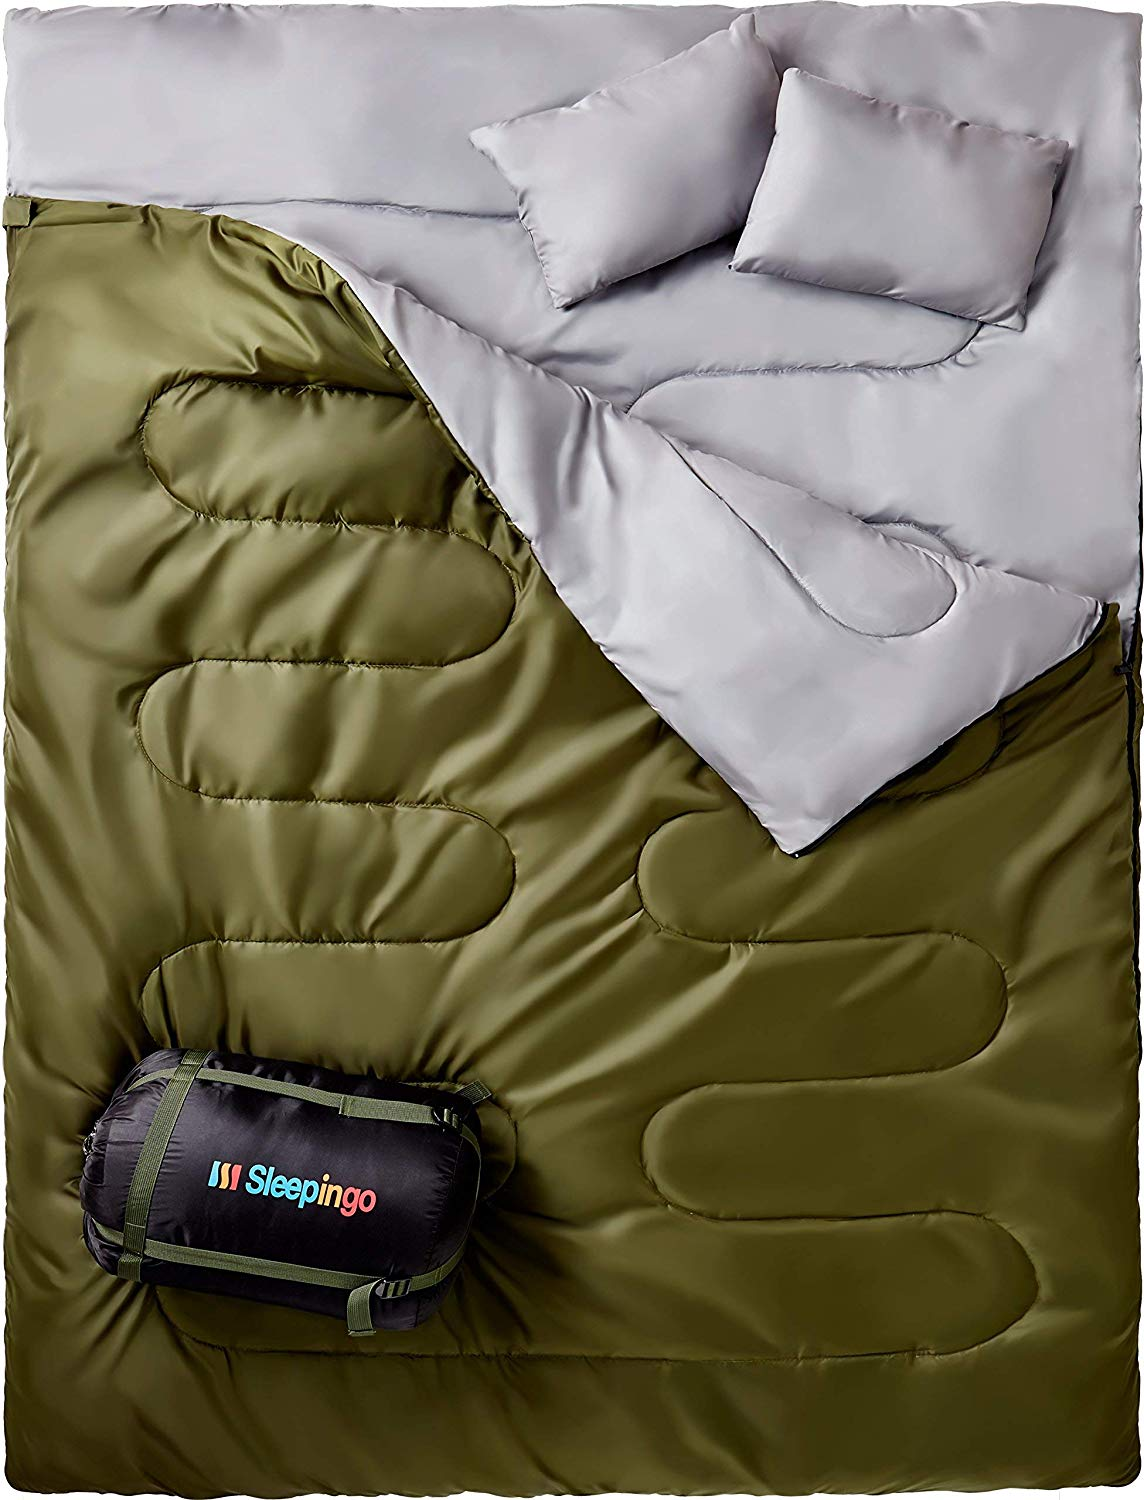 3. Sleepingo Double Sleeping Bag - There are an insane amount of sleeping bags to choose from all serving specific needs at a variety of price points. The Sleepingo Double ($57.95) is in our opinion pretty amazing. It fits two people, which is great for snuggling, it unzips by your feet incase you get hot, has a velcro tab so the bag doesn't come all the way undone in the middle of the night, comes in a variety of colors, and can unzip and create two totally separate sleeping bags incase the need arises.